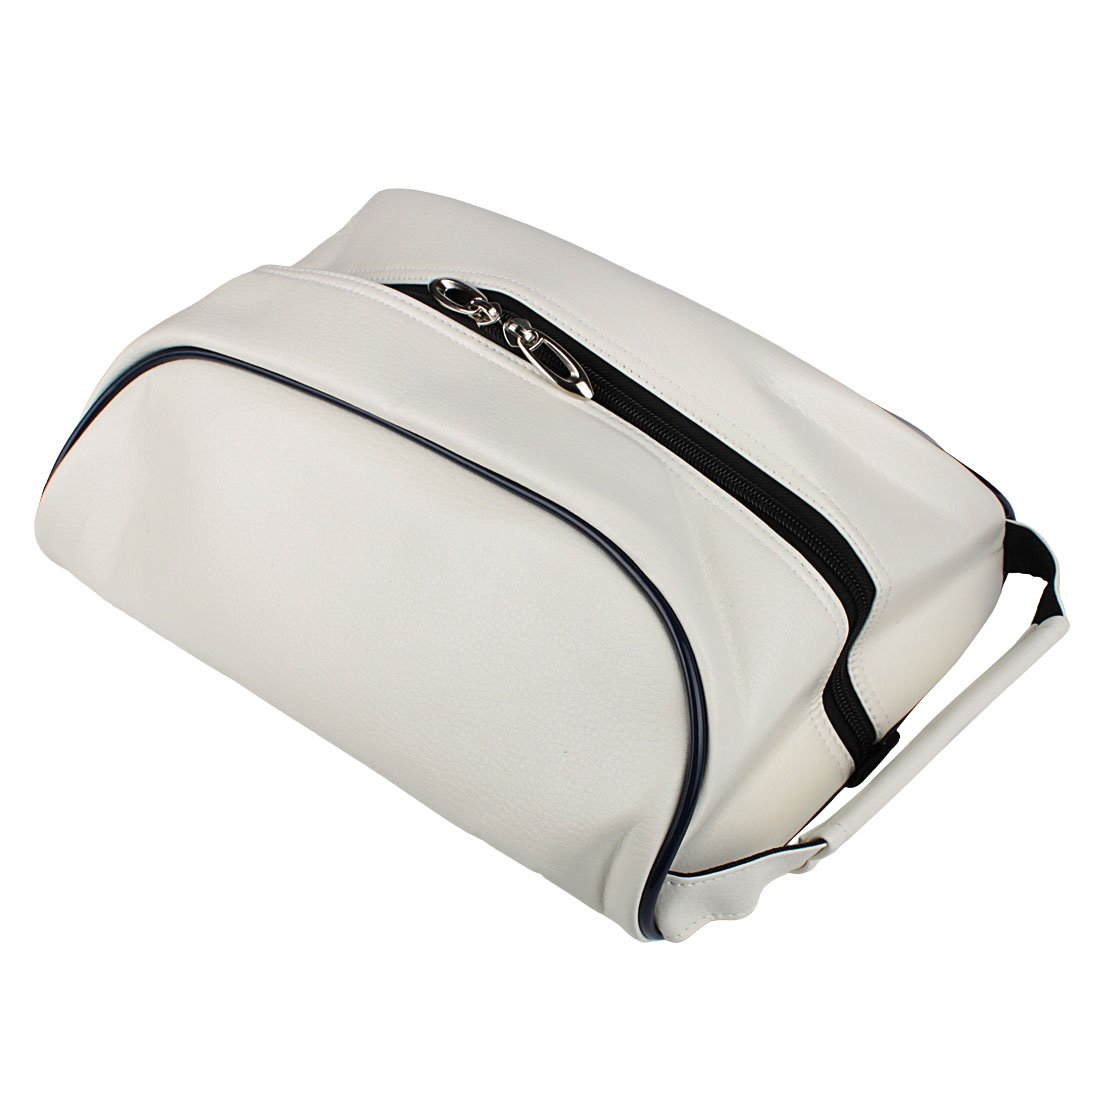 Andux Golf Shoes Bag Sports Accessories Collection Tote GEFXB-01 by Andux (Image #3)